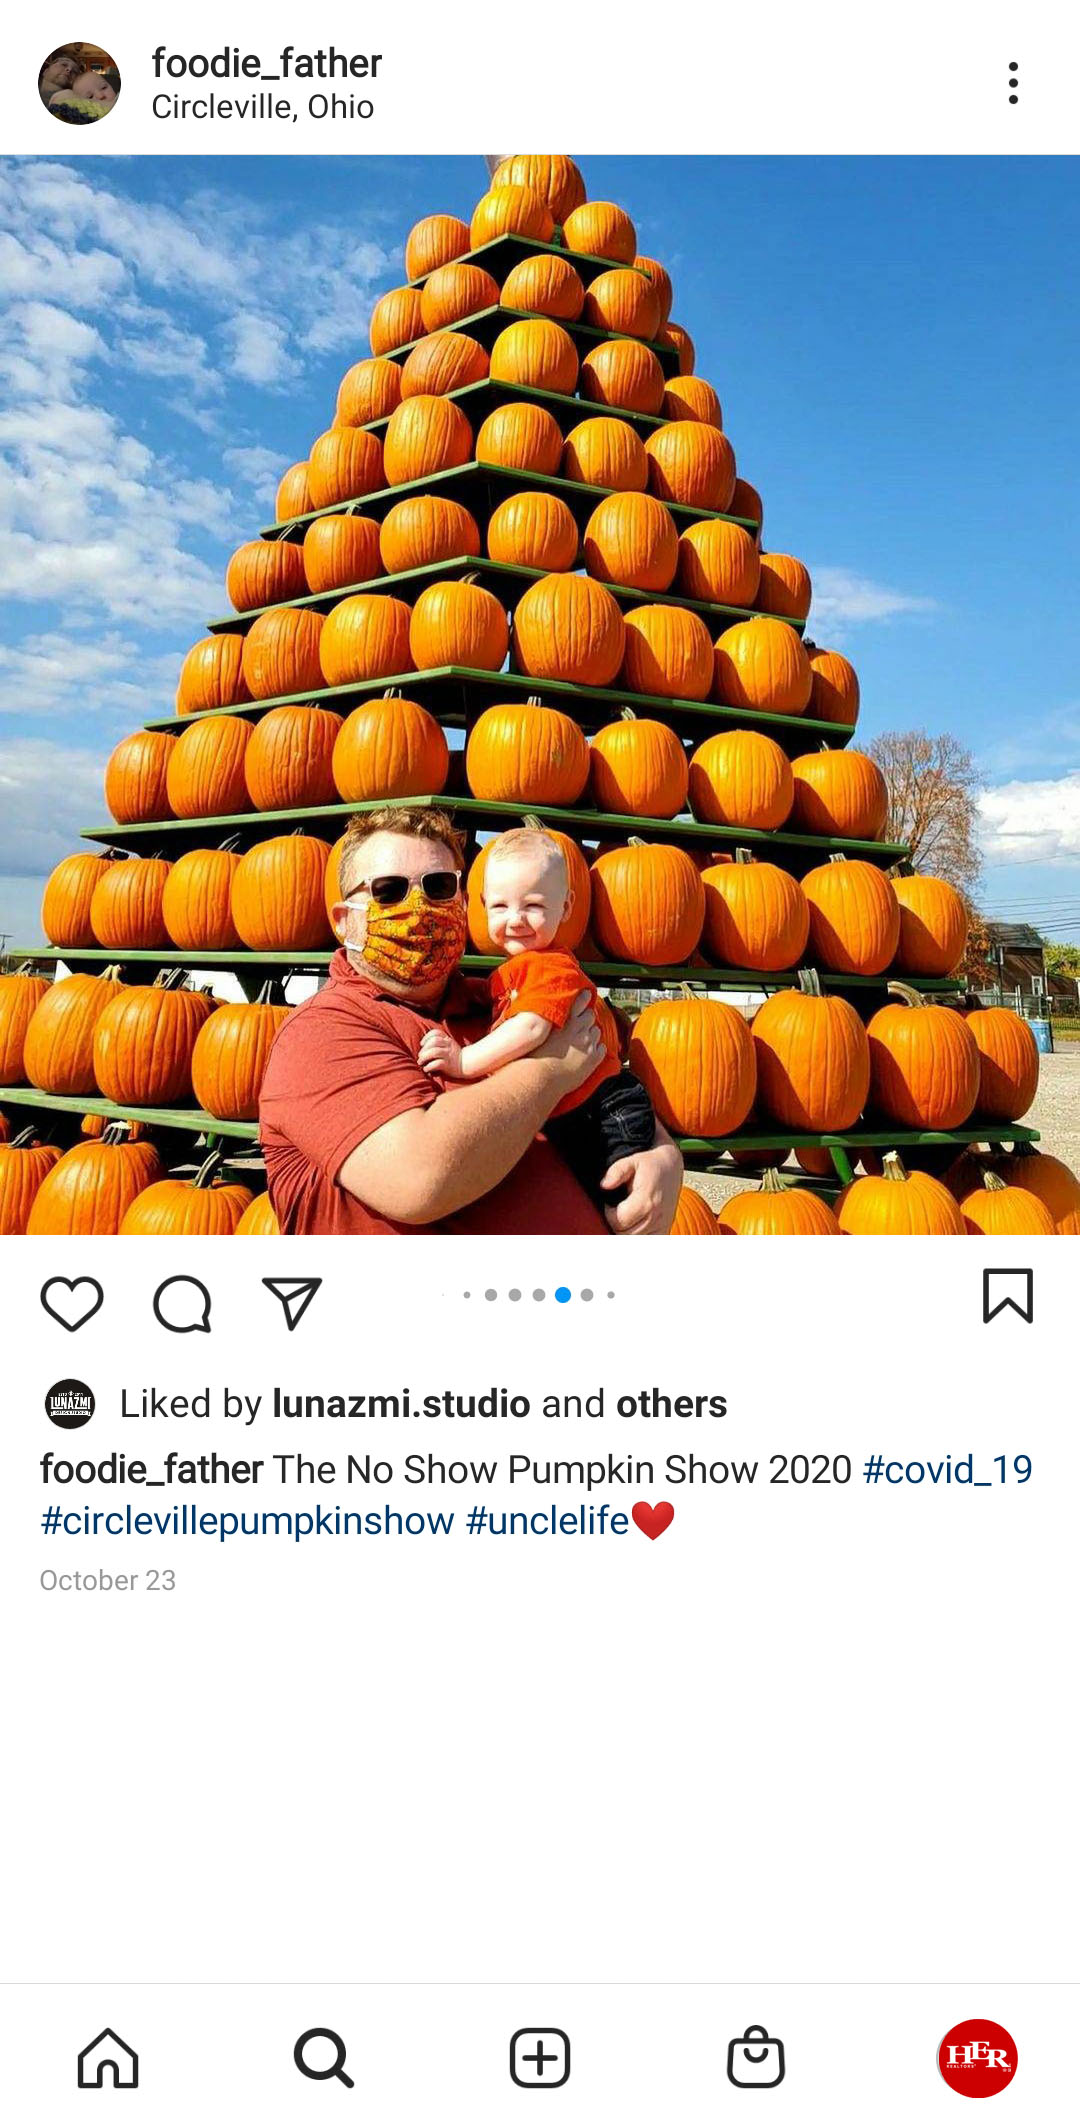 A man with his baby at pumpkin show